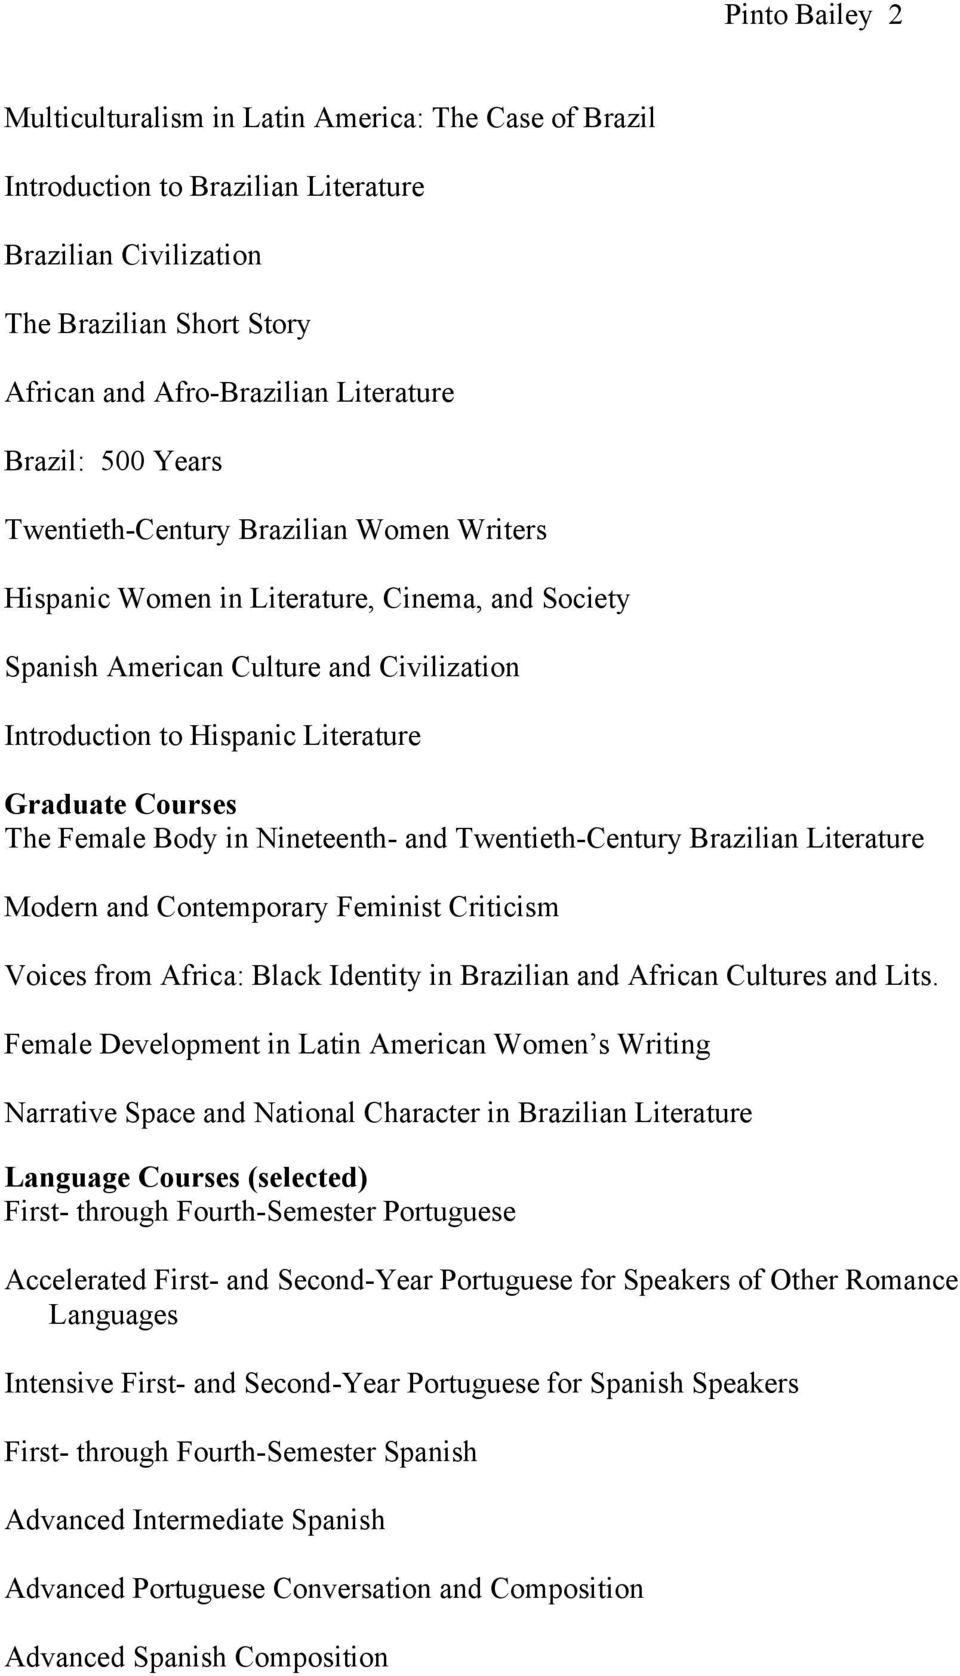 Courses The Female Body in Nineteenth- and Twentieth-Century Brazilian Literature Modern and Contemporary Feminist Criticism Voices from Africa: Black Identity in Brazilian and African Cultures and